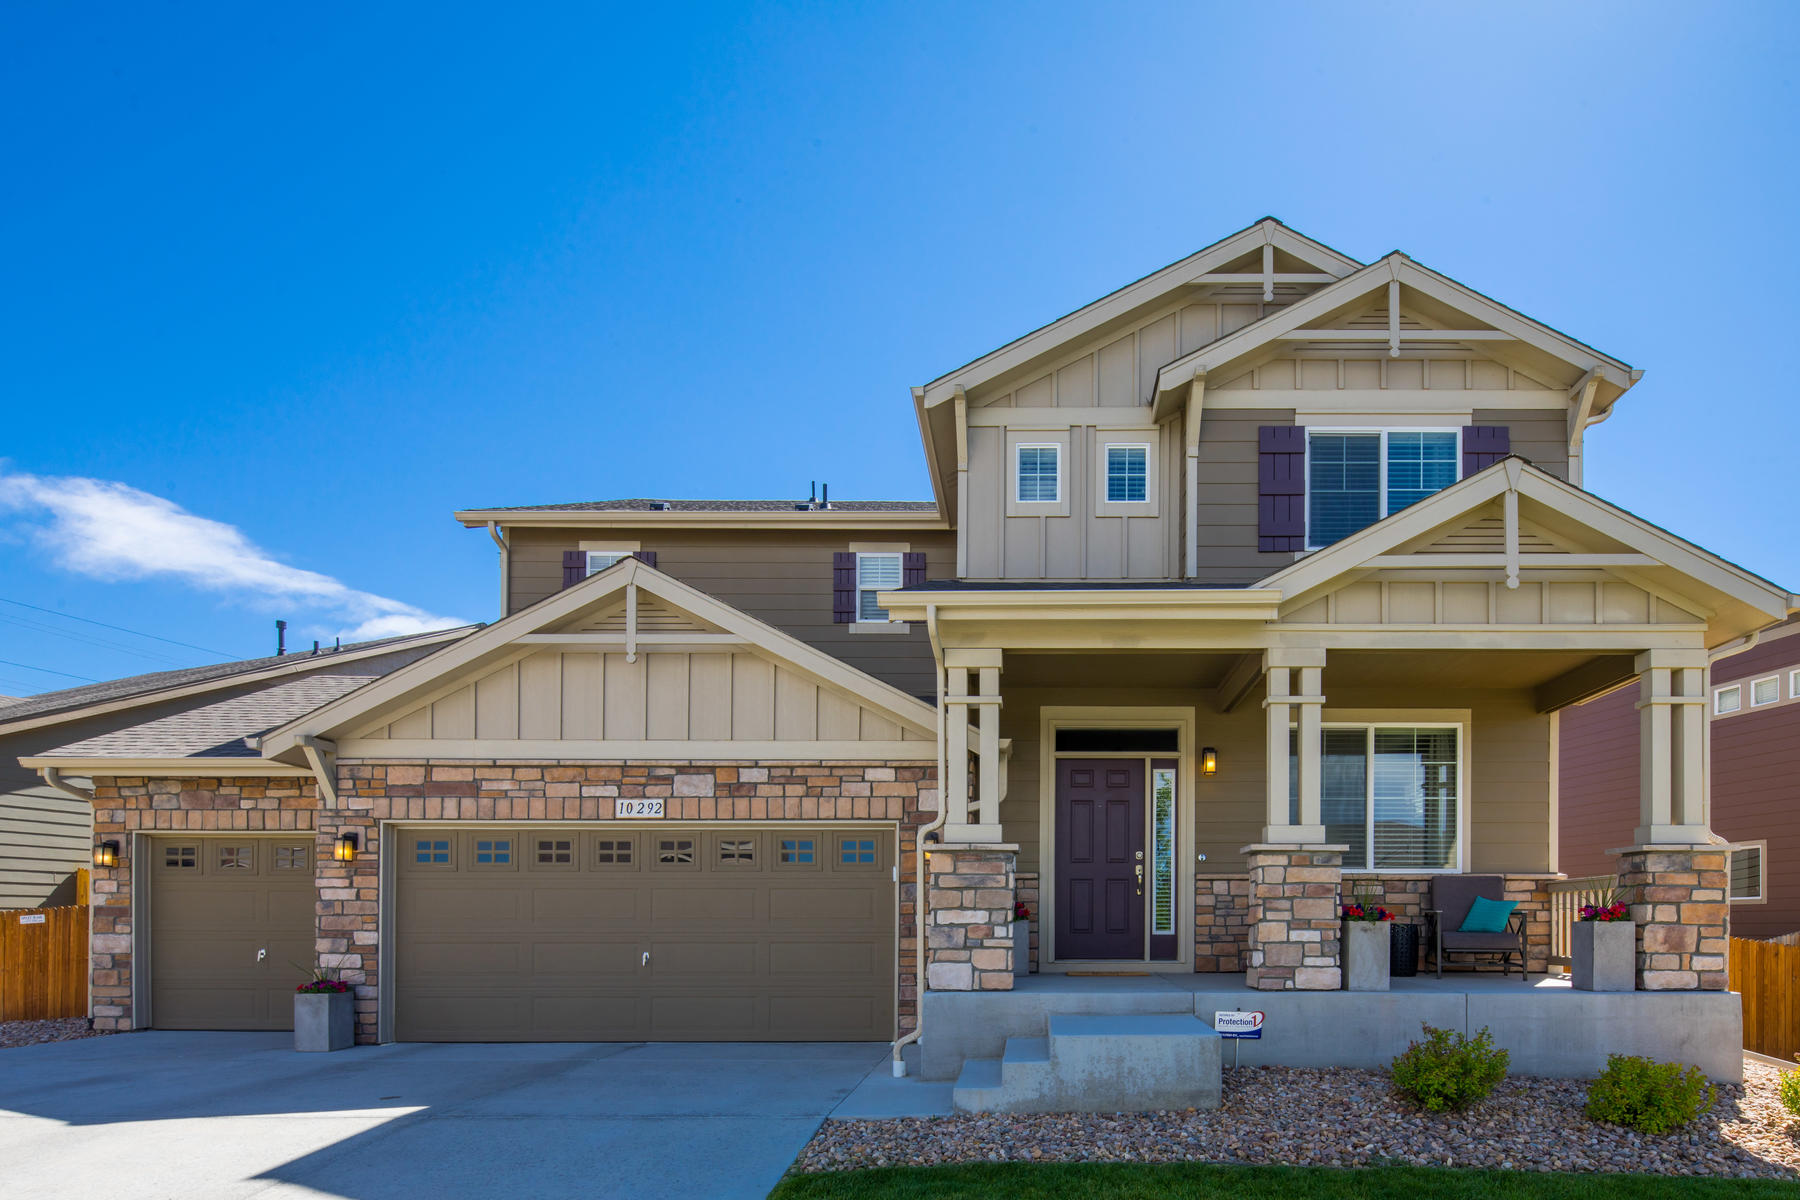 Single Family Homes for Sale at 10292 Nucla Street Commerce City, Colorado 80022 United States